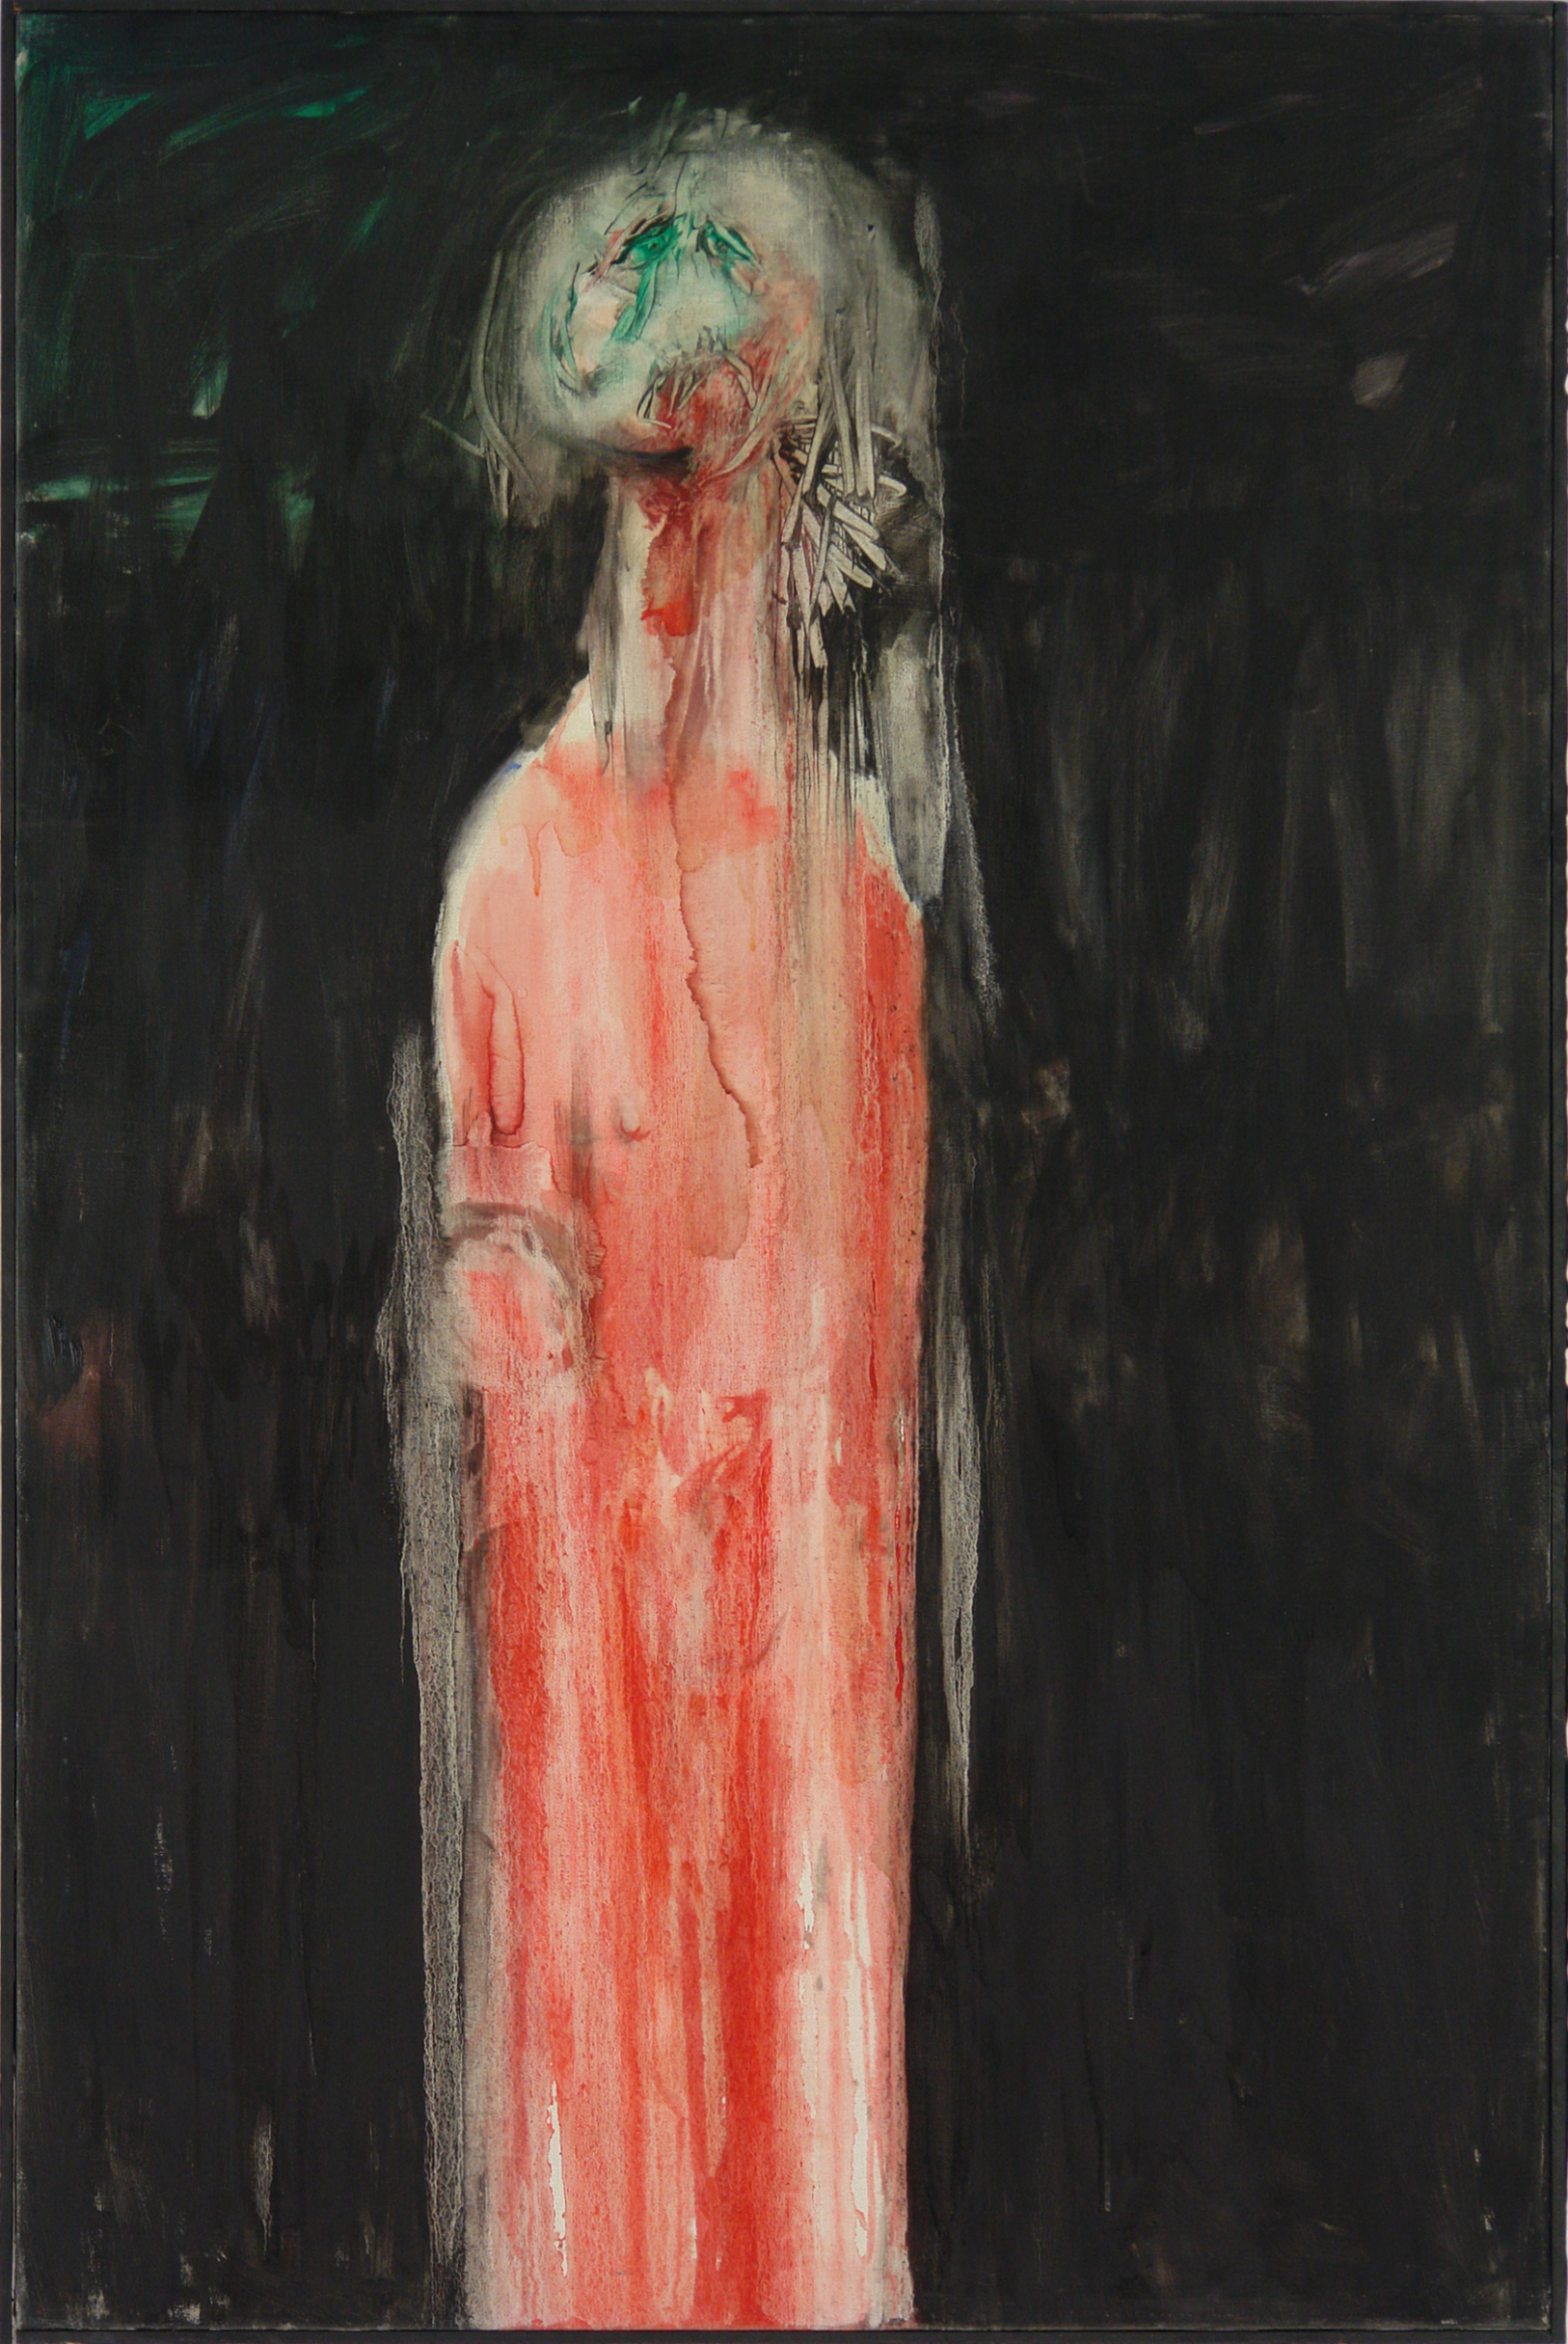 George Lampe - Femme au Moignon (Woman with Stump) | Oil on canvas | 100 x 150 | Signed on the reverse | 1966 | GL91